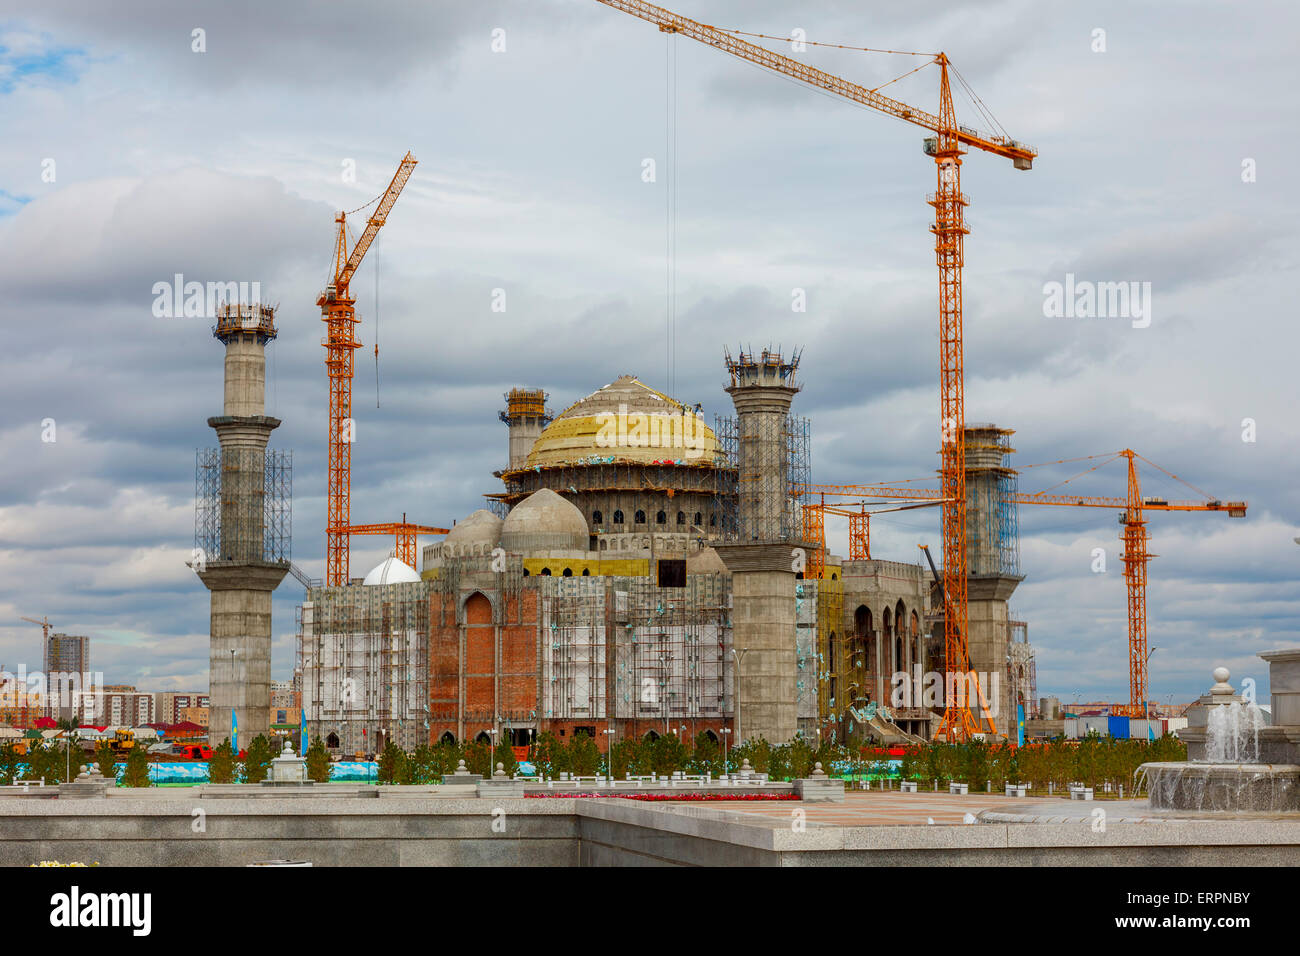 Construction of the mosque Hazrat Sultan, Astana, Kazakhstan - Stock Image